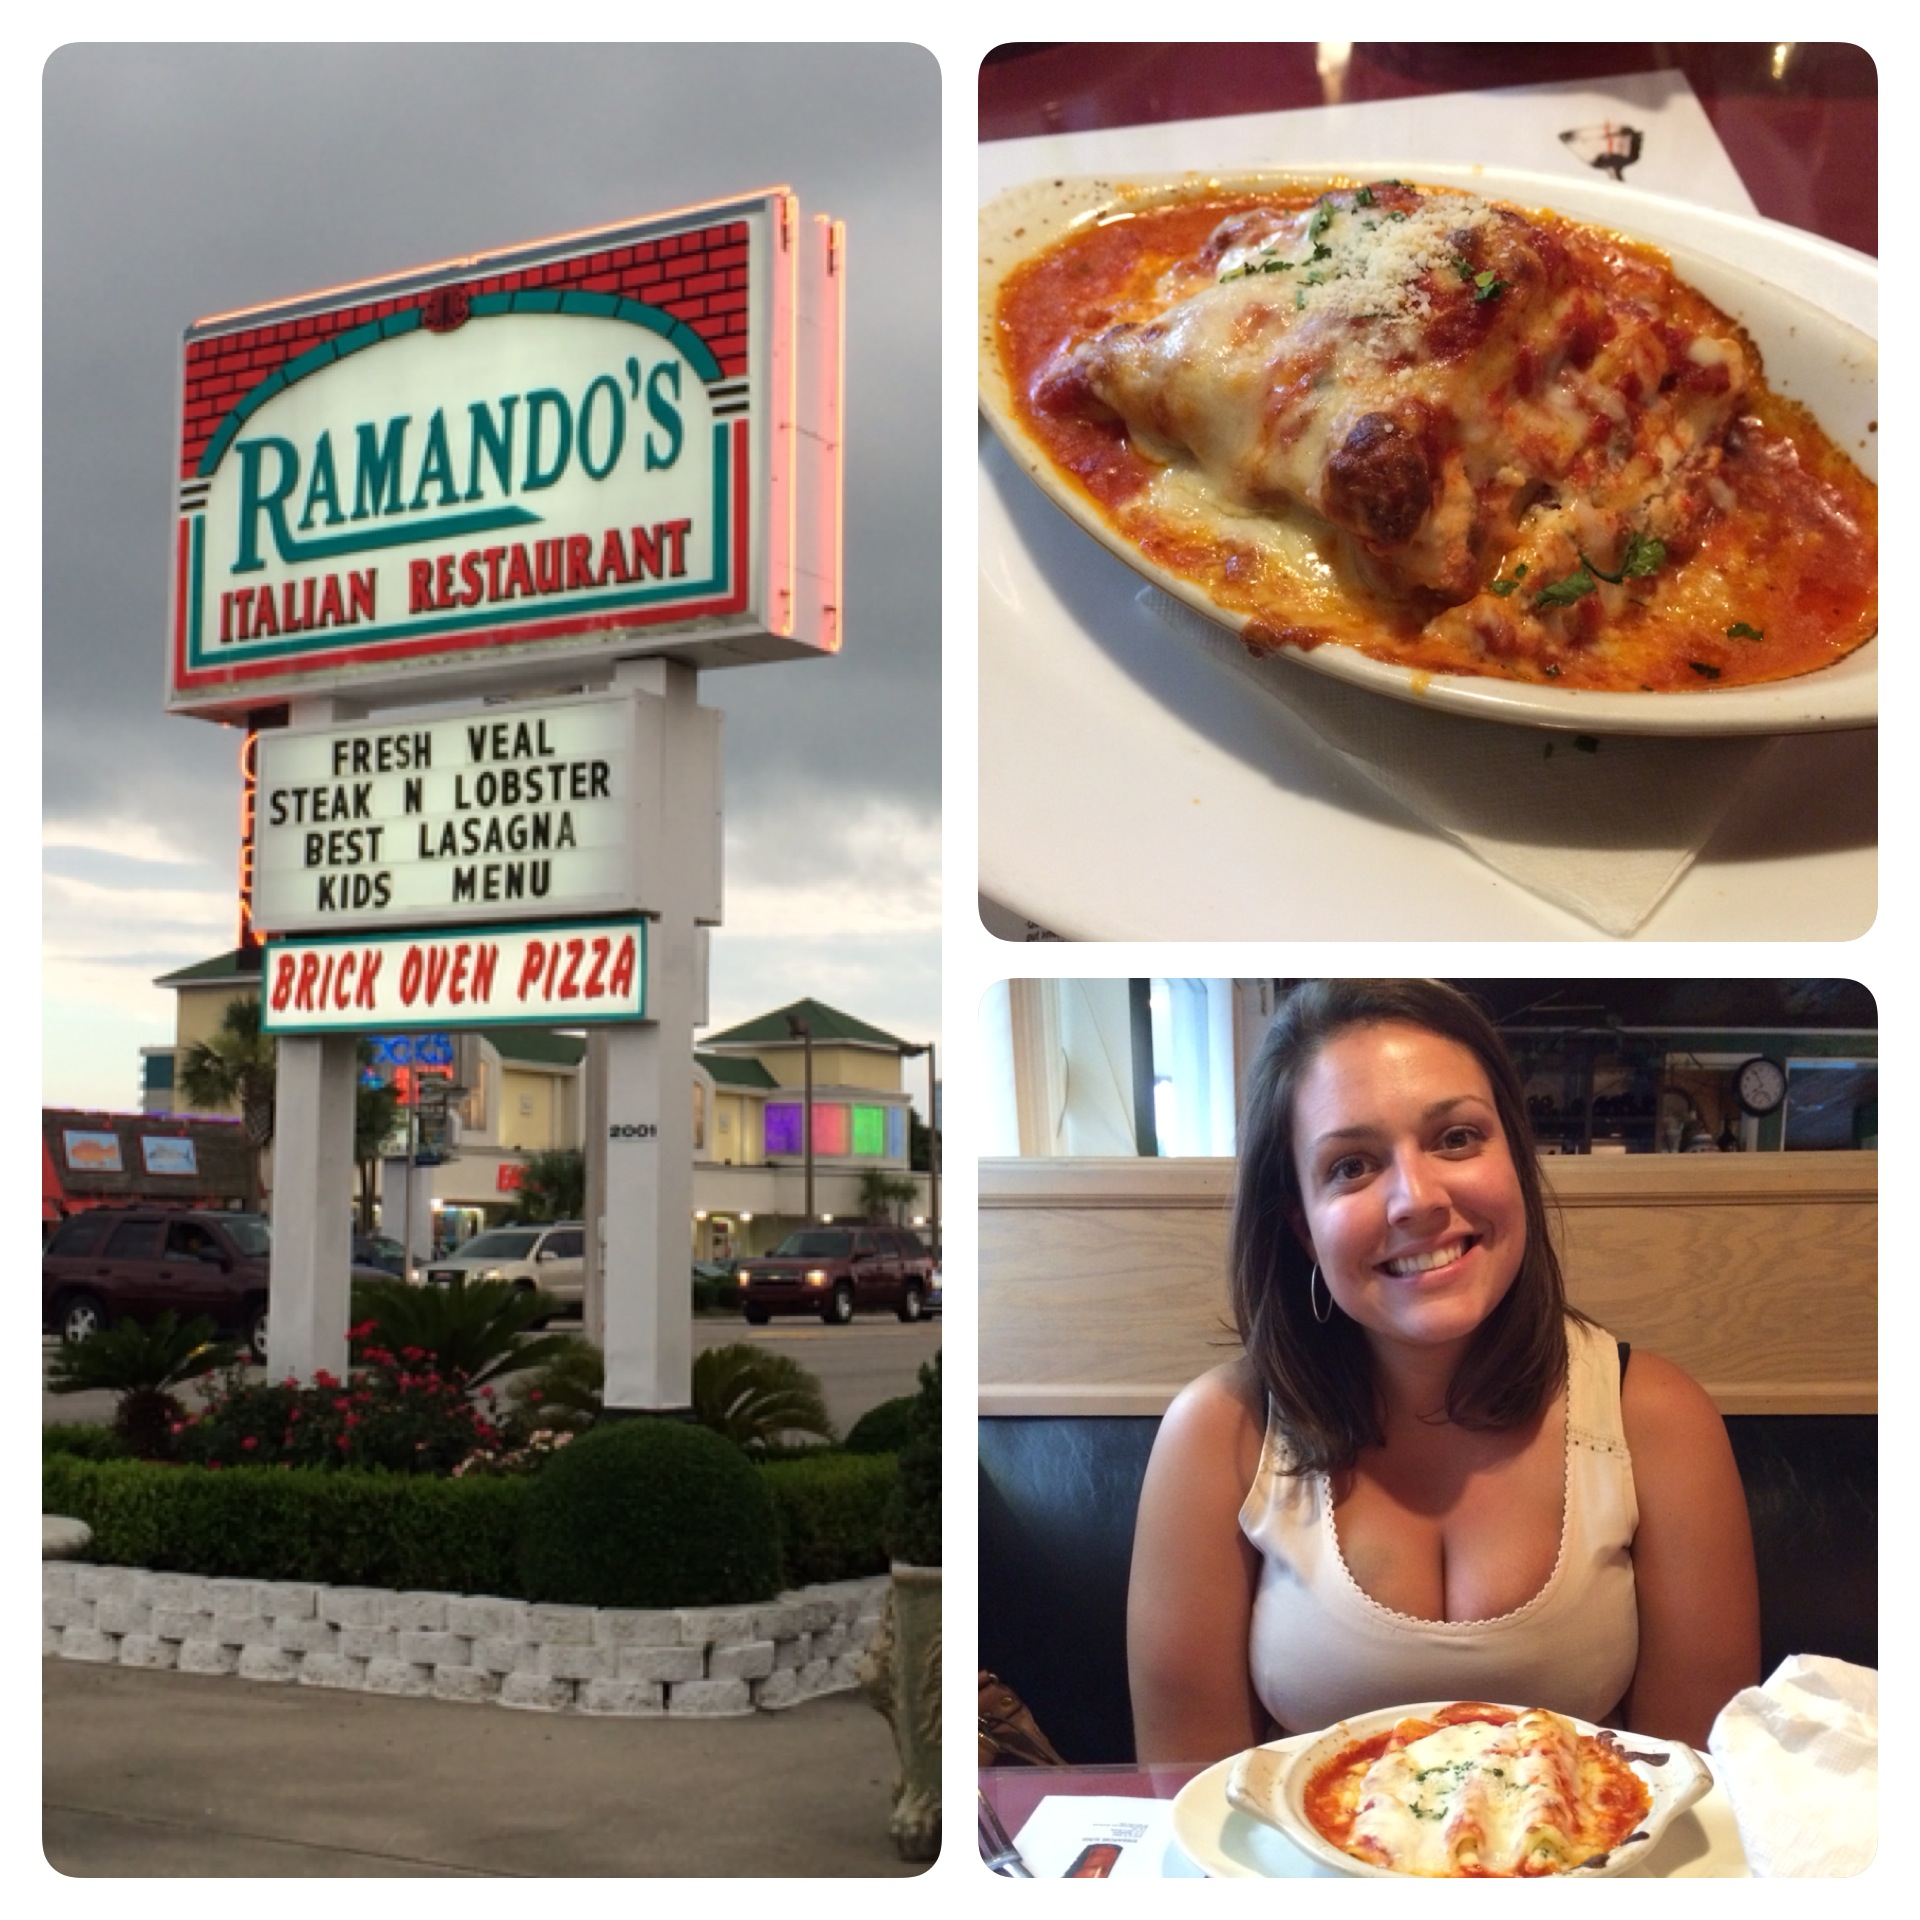 The Ramando's sign, my lasagna, and Sidney with her manicotti.